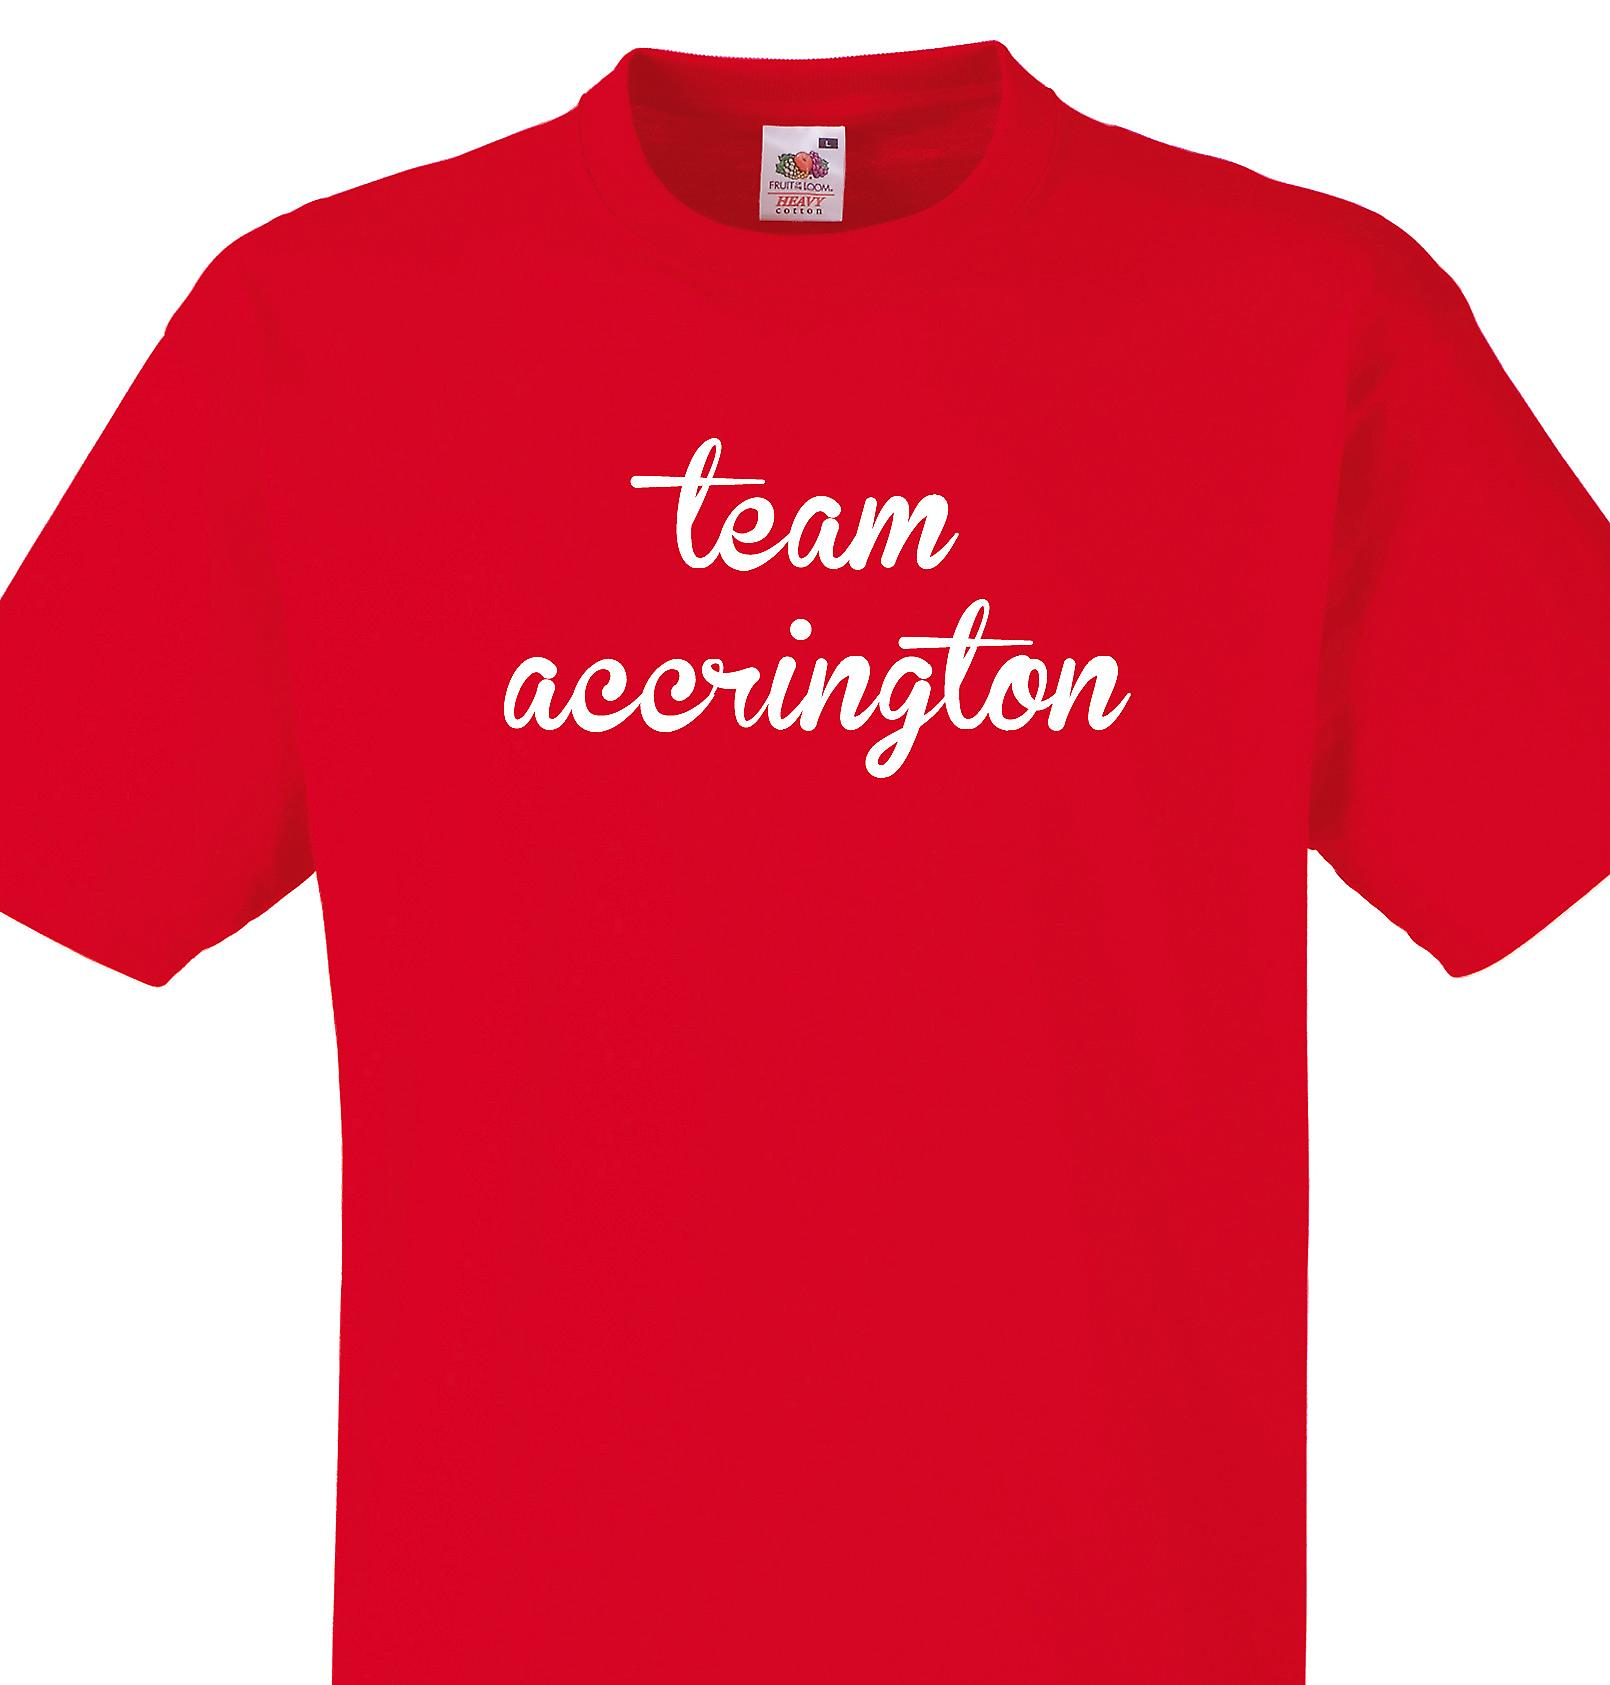 Team Accrington Red T shirt